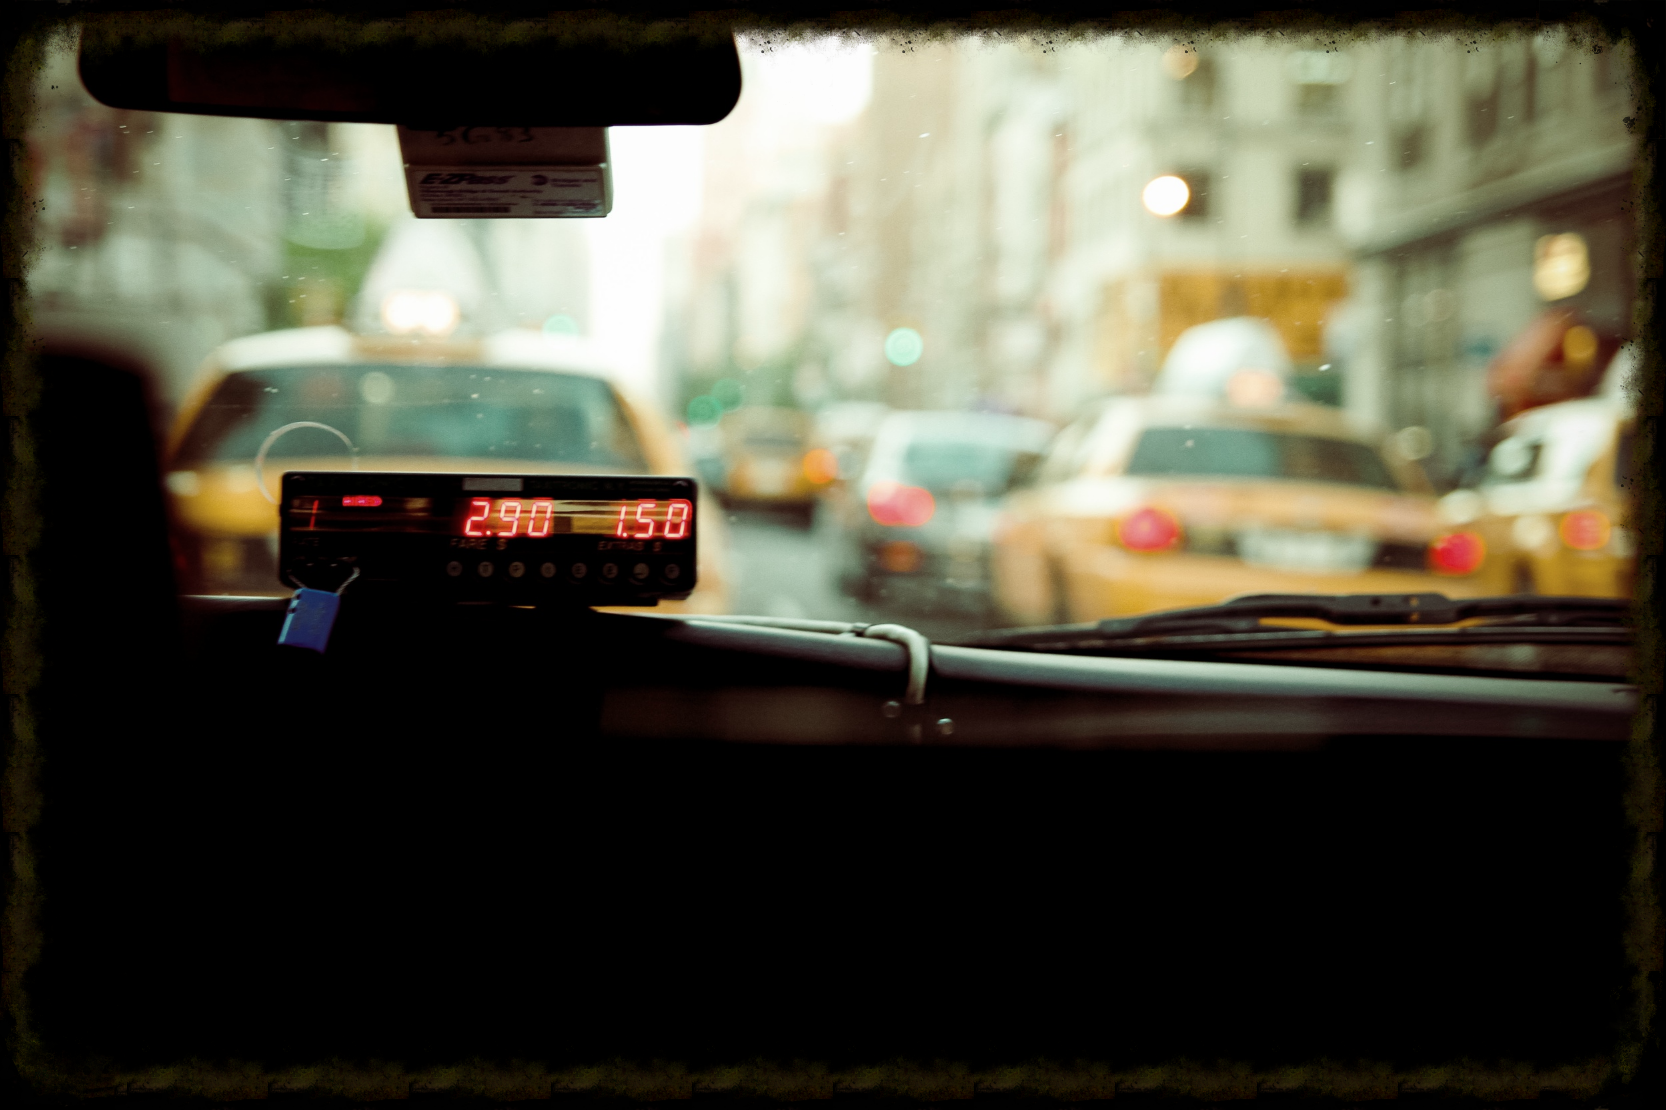 Do not sit in the front seat of a Taxi if you are riding alone with the driver!